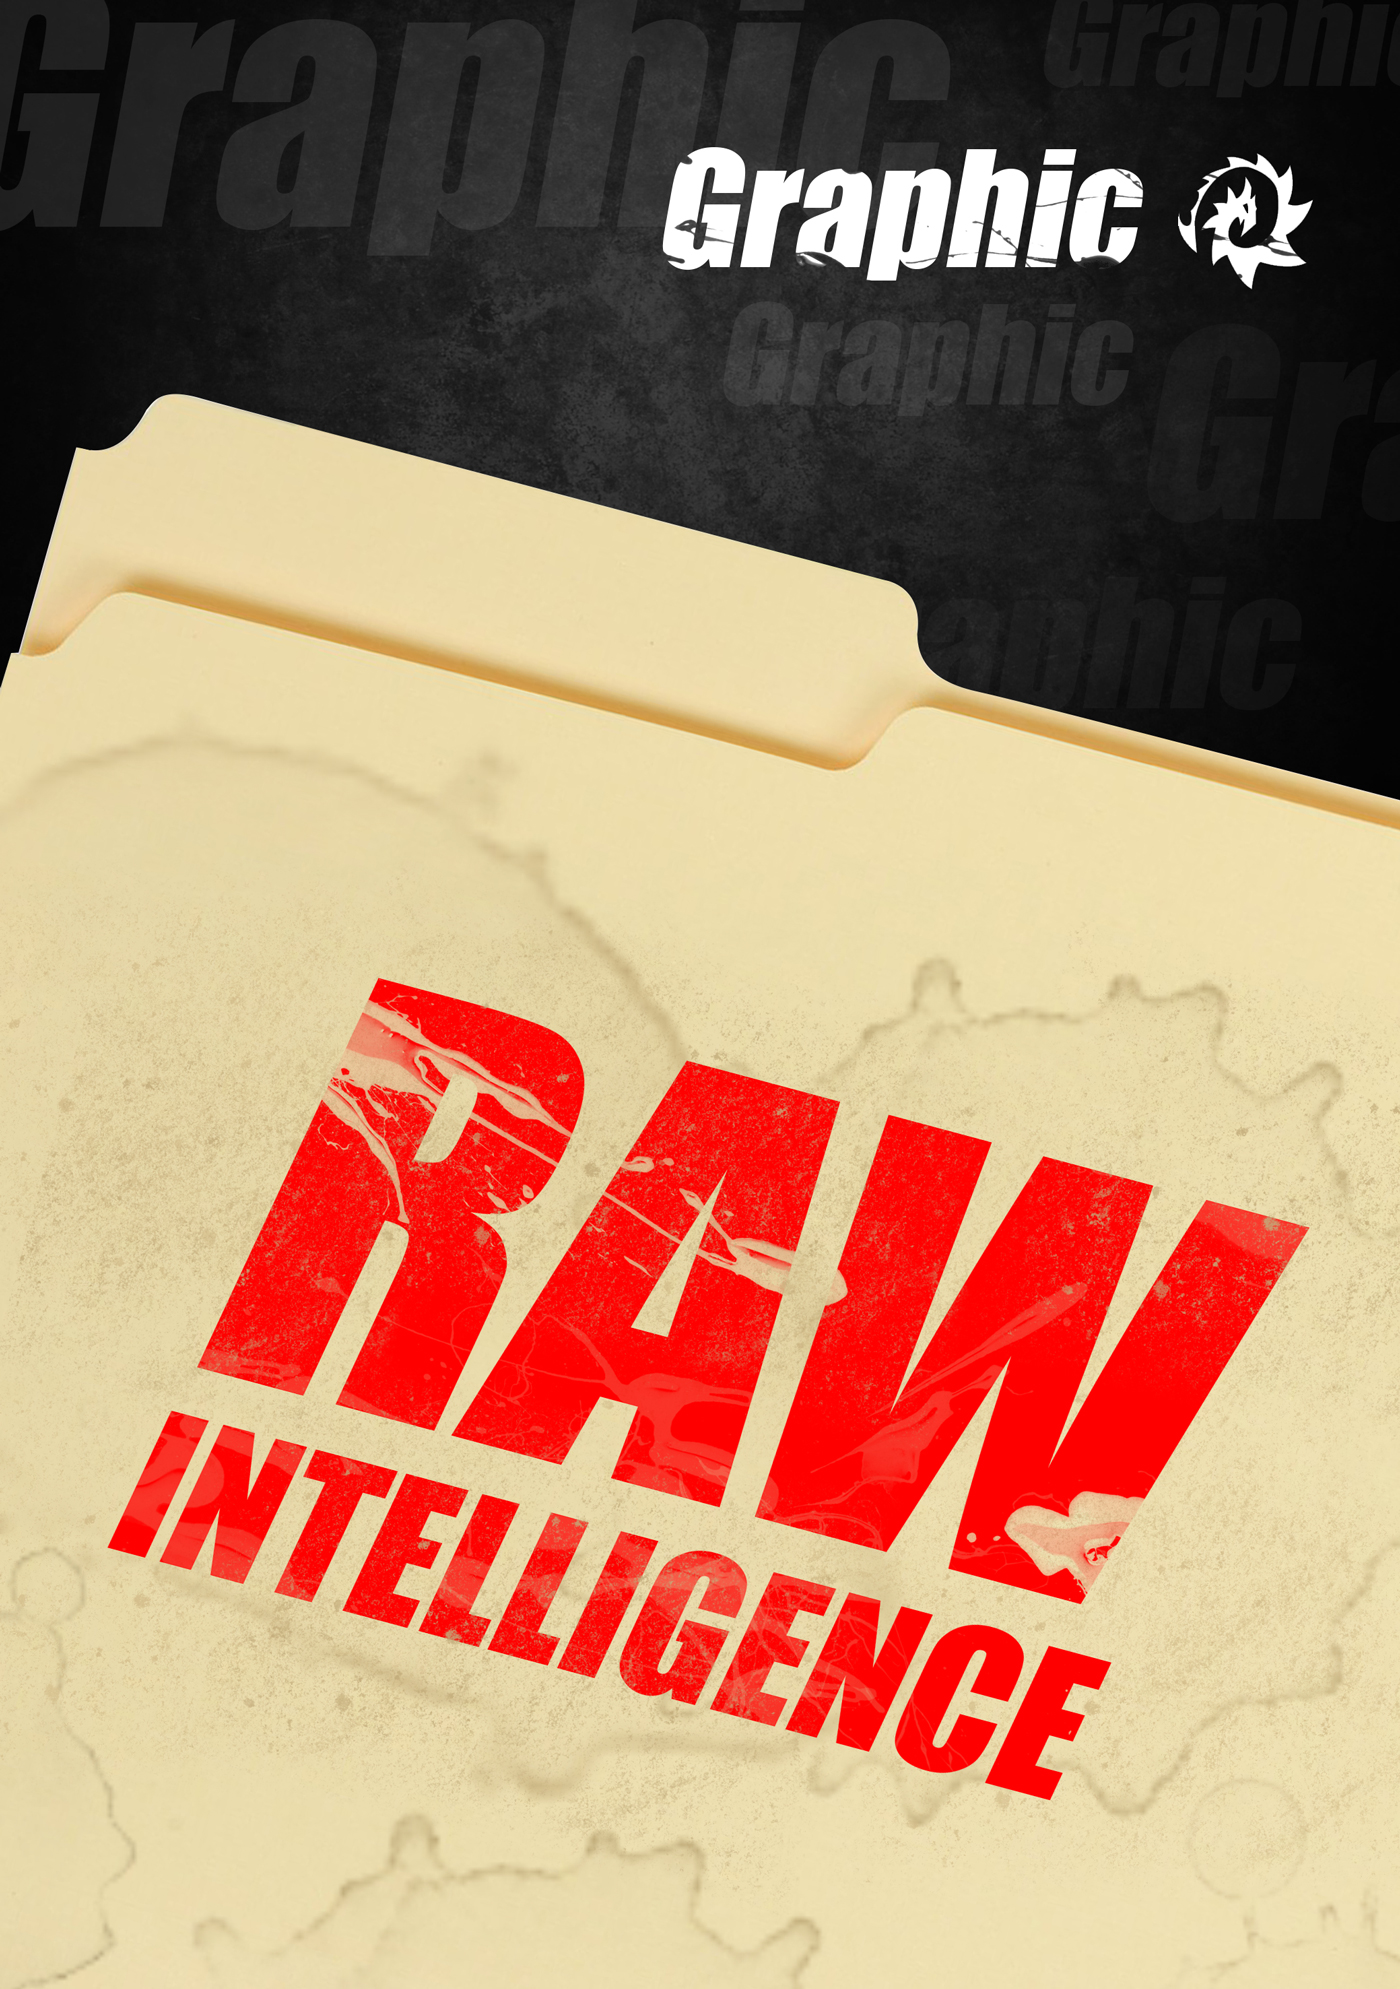 Graphic Raw Intelligence, Australian Hip Hop, Aussie Hip Hop, Ozhiphop, Ozhiphopshop, Australian Rap